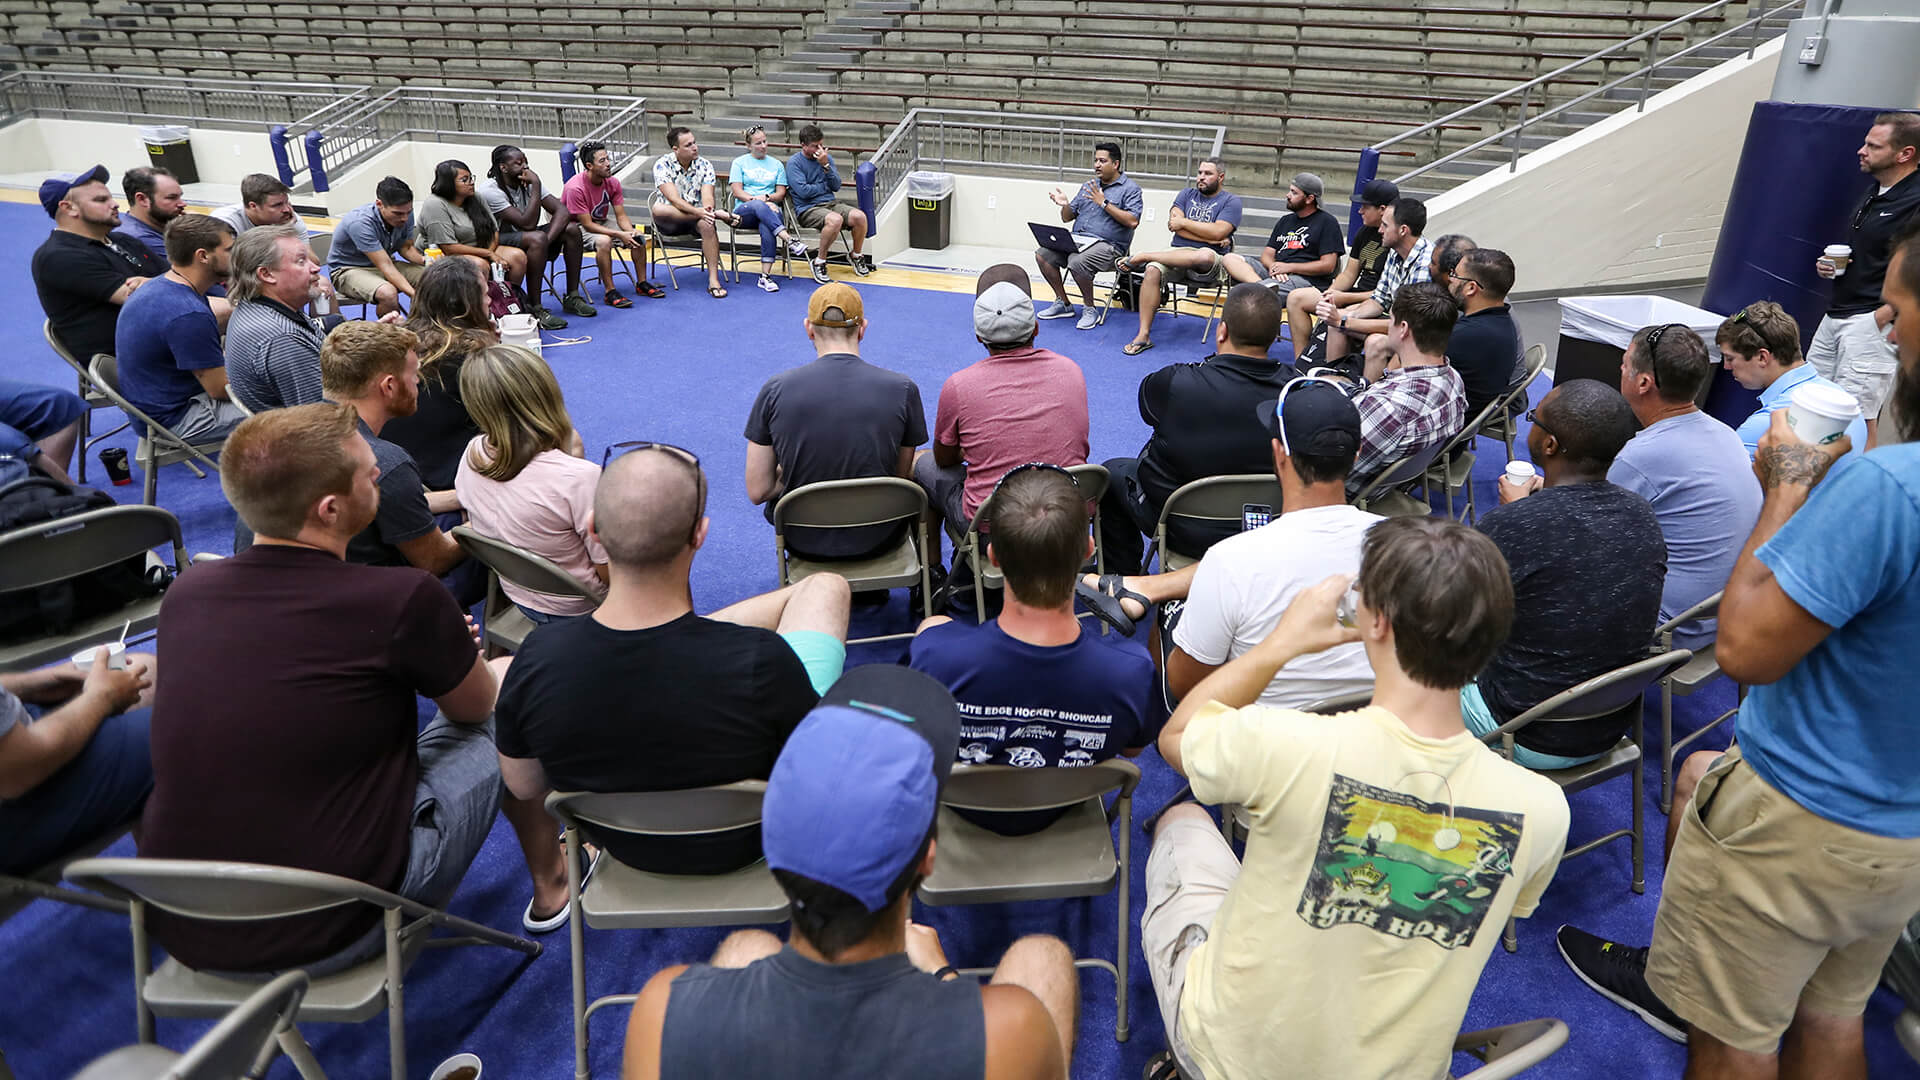 Instructors summit brings together creative minds